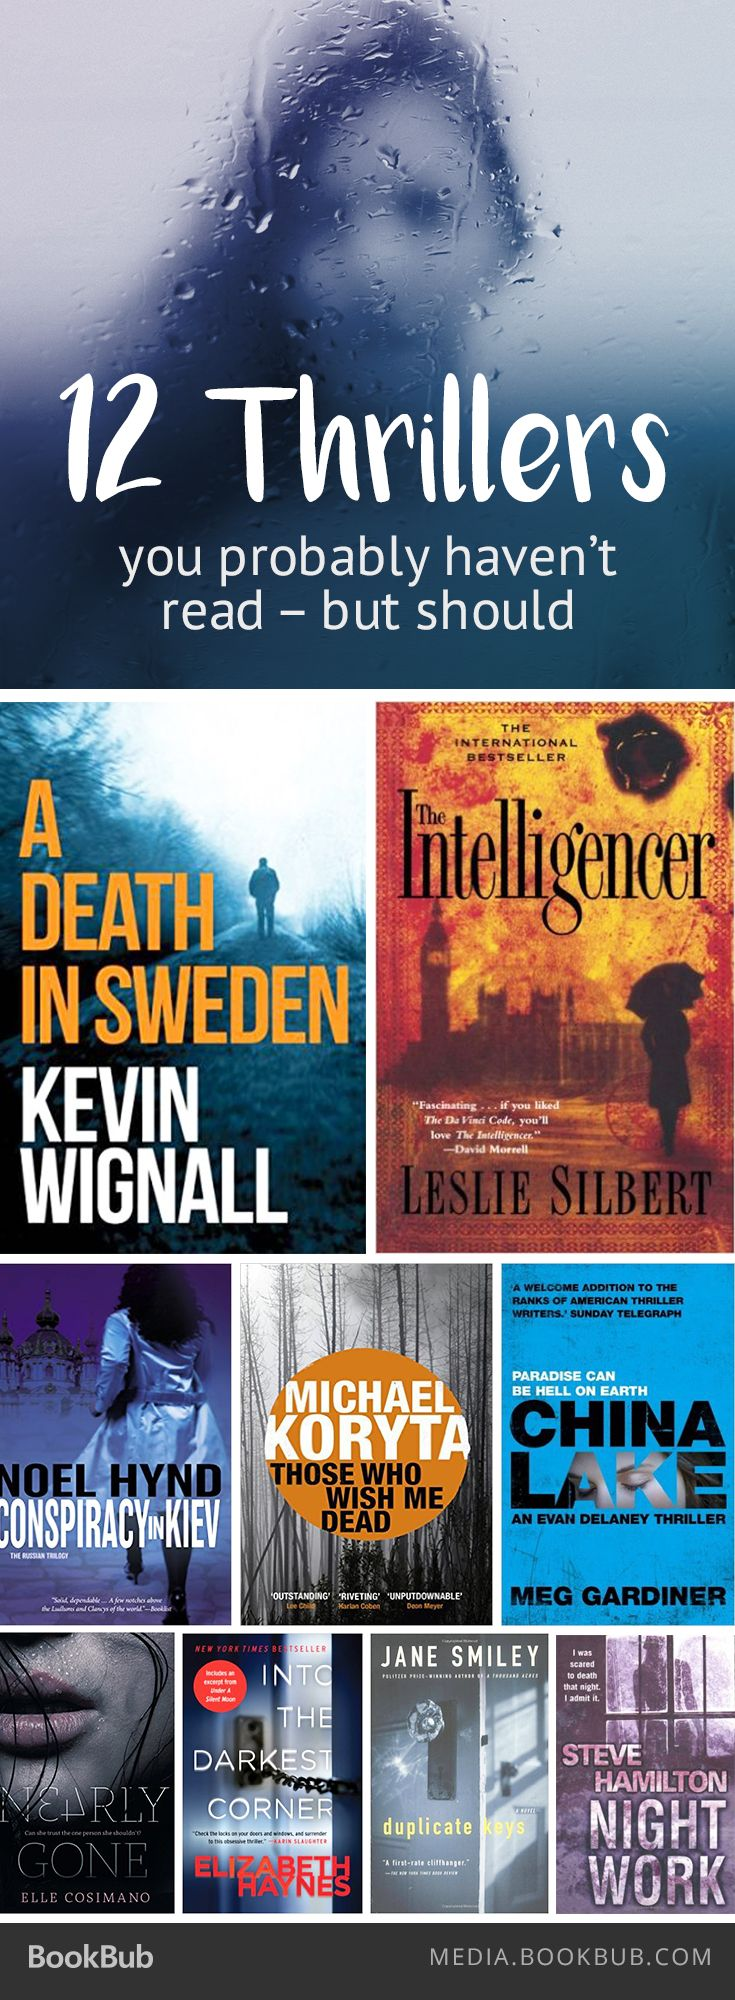 12 Thrillers You Probably Haven't Read €� But Should